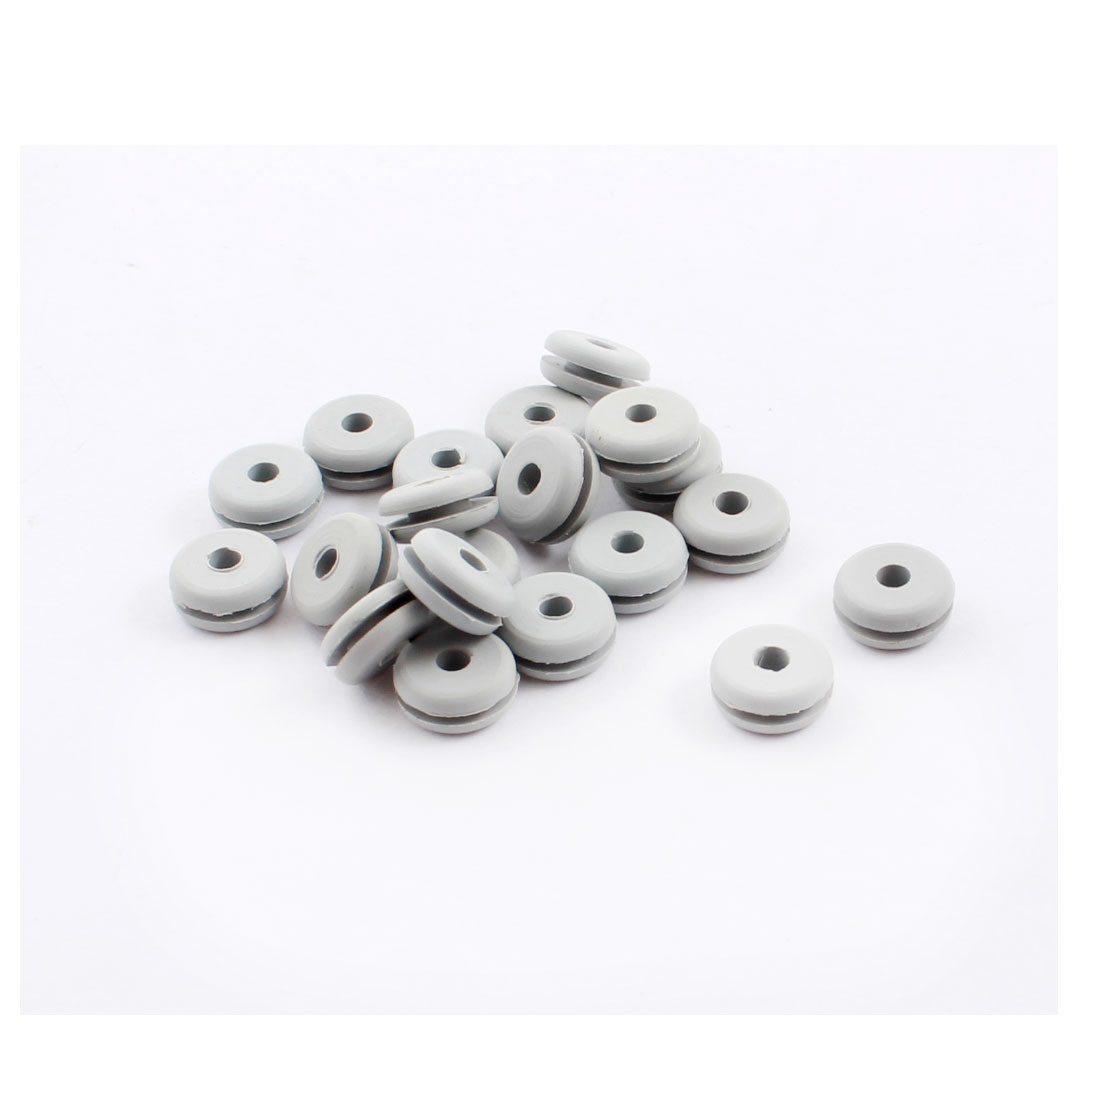 20Pcs RC Spare Parts Canopy Rubber Grommet 2.7x5x9.5x4.2mm for 500 Size Helicopter